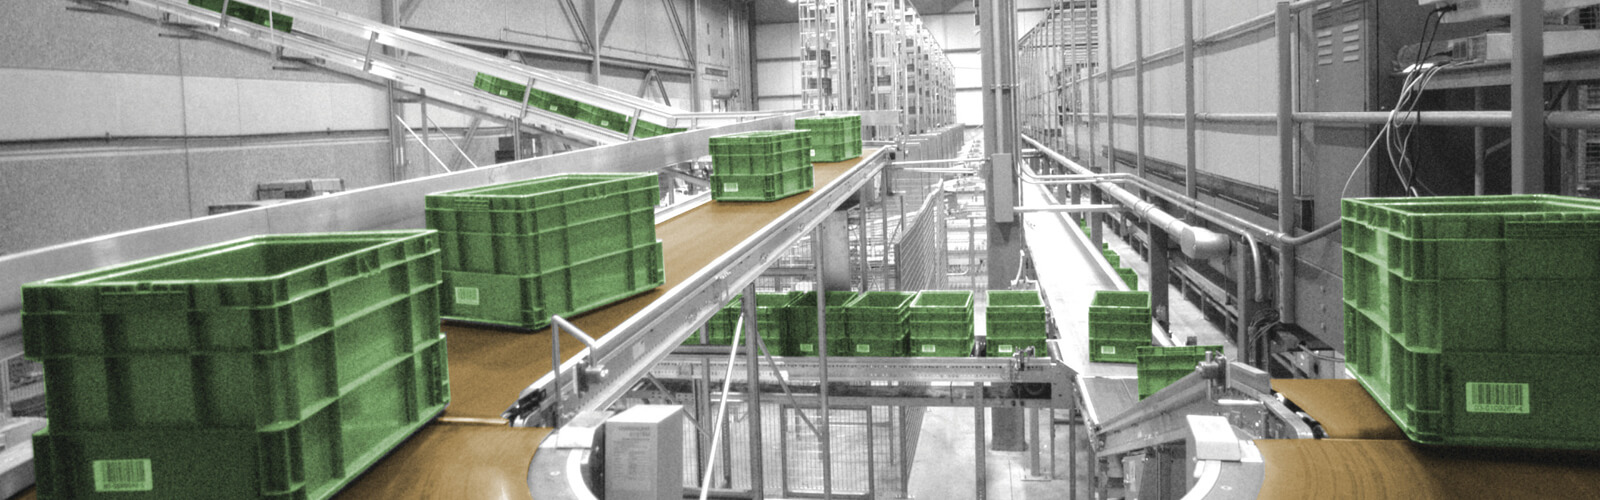 ops design banner-conveyor-belt-with-crates supply chain solutions